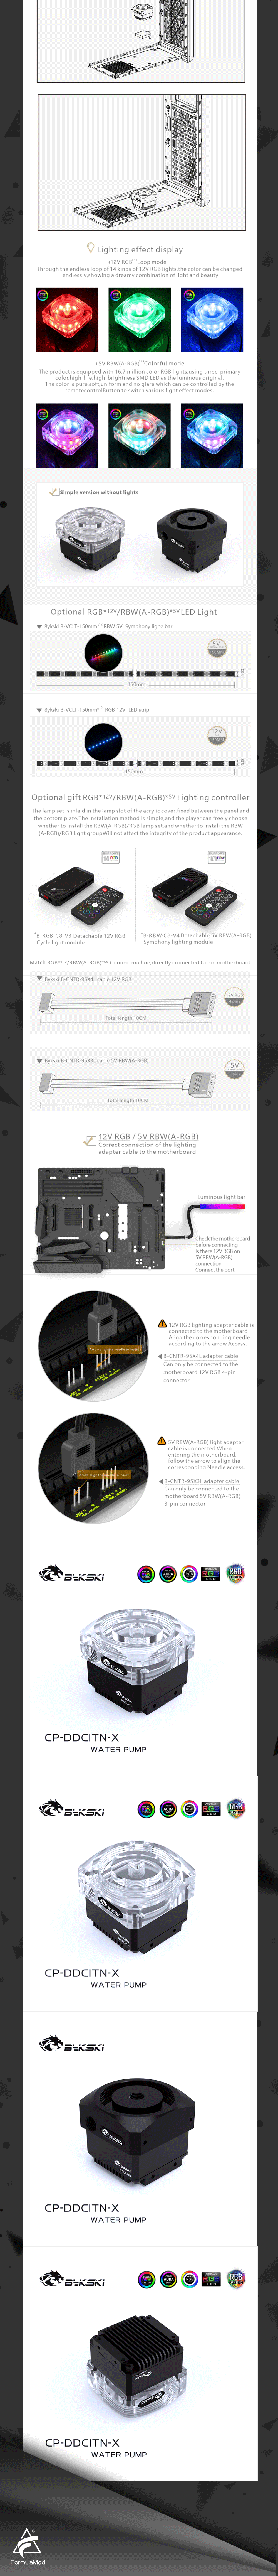 Bykski Laing DDC Pump CP-DDCITN-X Silent Water POM / Acrylic 4 Meters Flow 350L/H For Computer Liquid Build Water Cooling